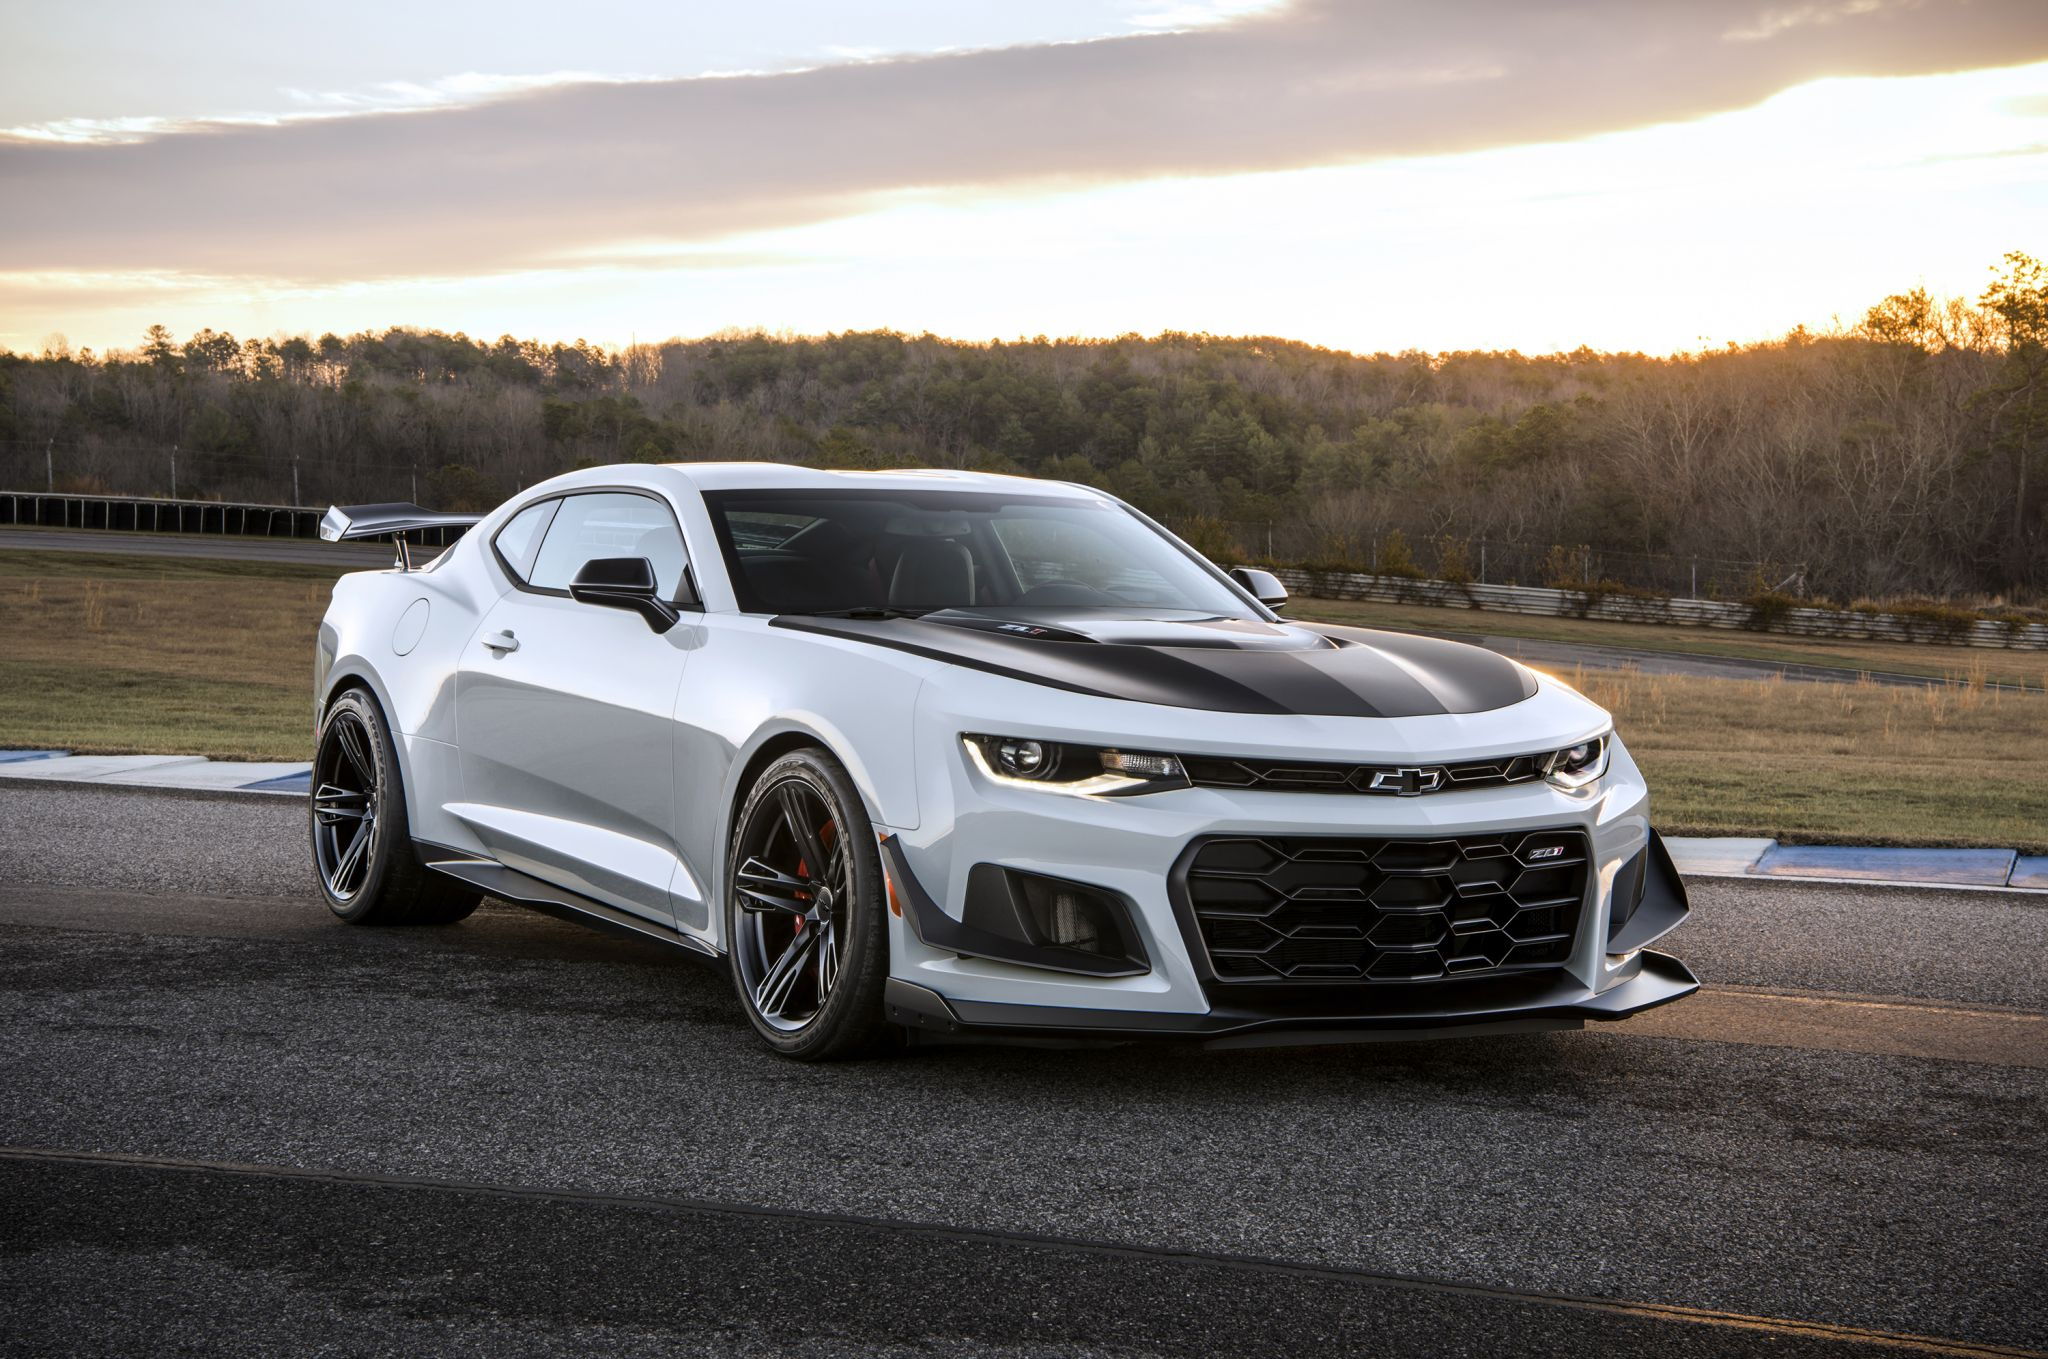 Chevy unveils ZL1 1LE sports car for 2018 Camaro lineup